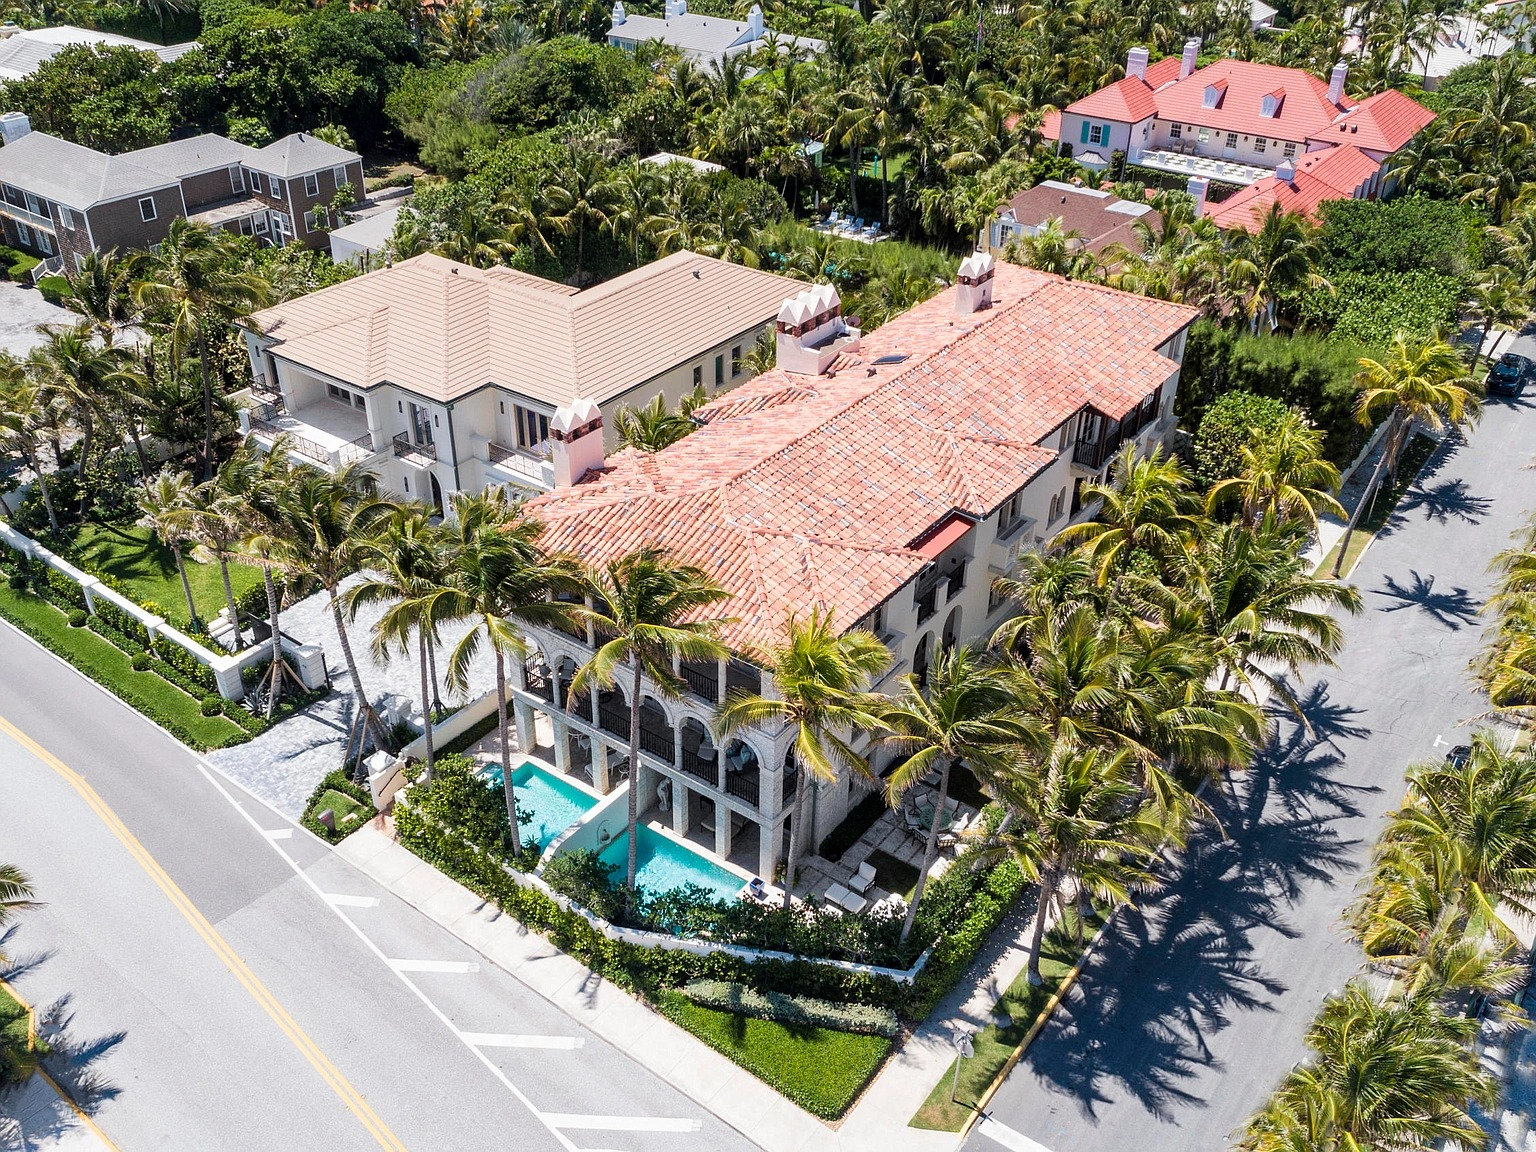 104 Gulfstream Rd, Palm Beach, FL 33480 - $14,490,000 home for sale, house images, photos and pics gallery